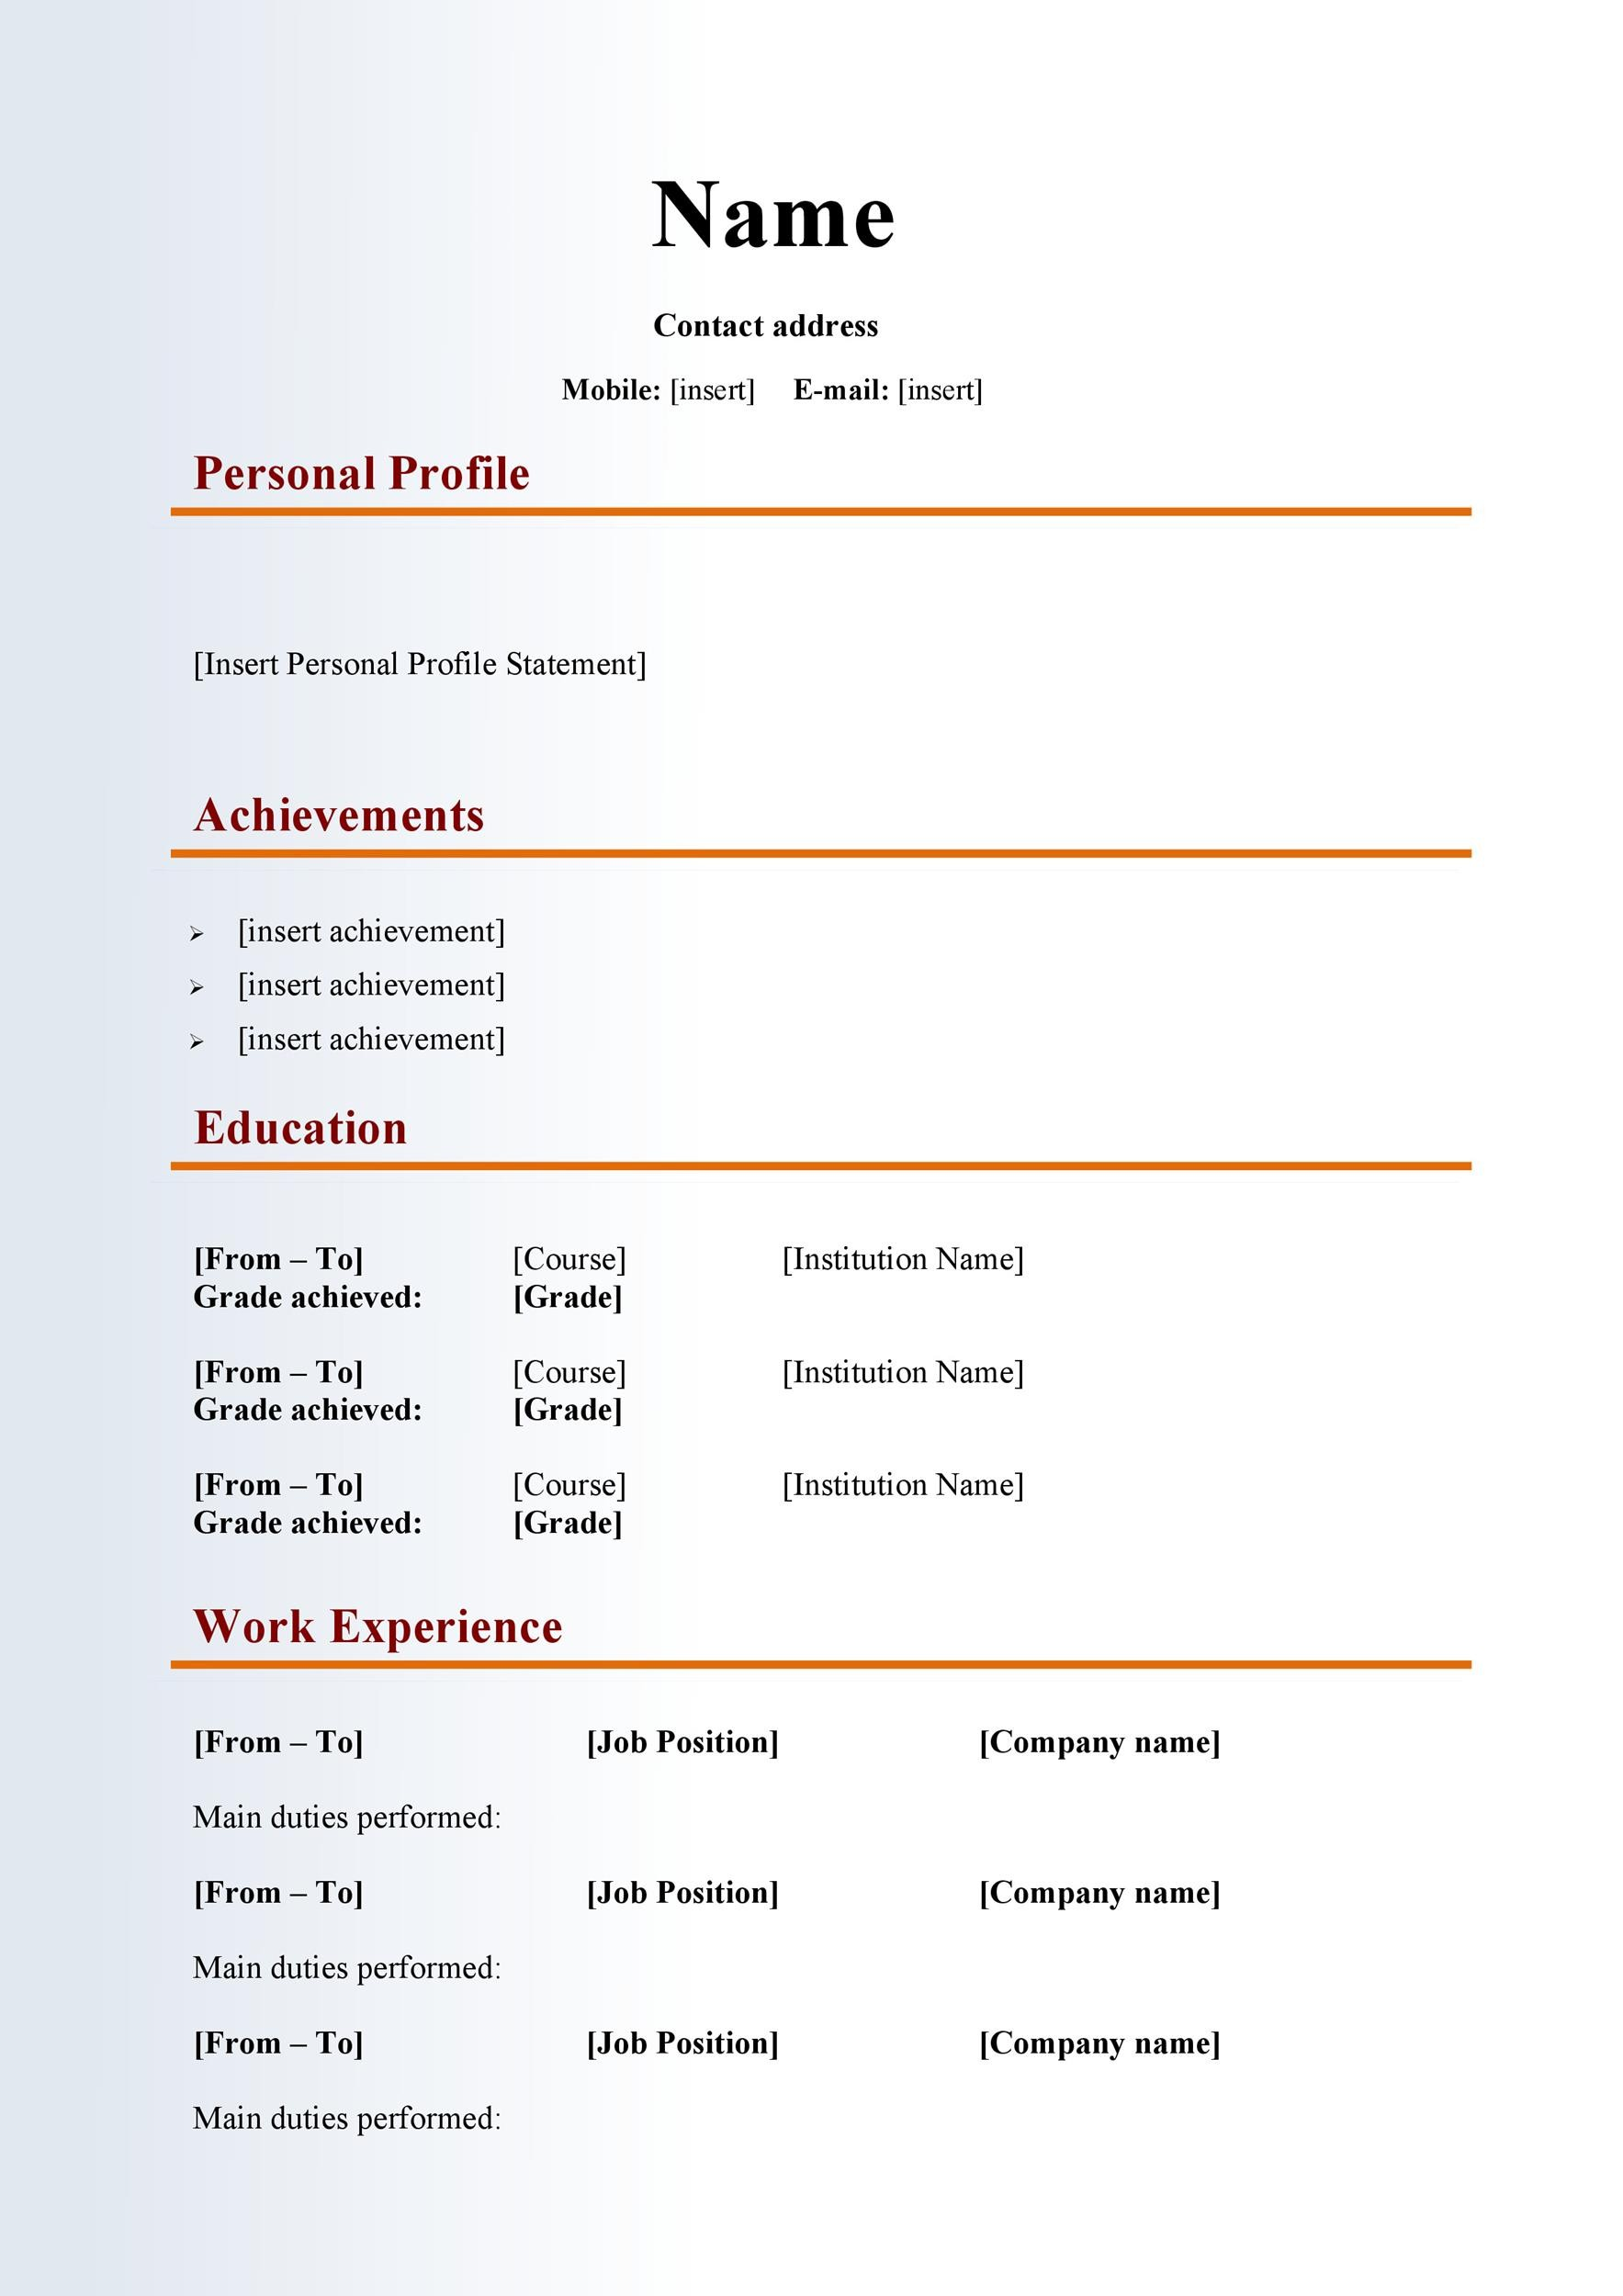 48 great curriculum vitae templates  u0026 examples  u1405 template lab